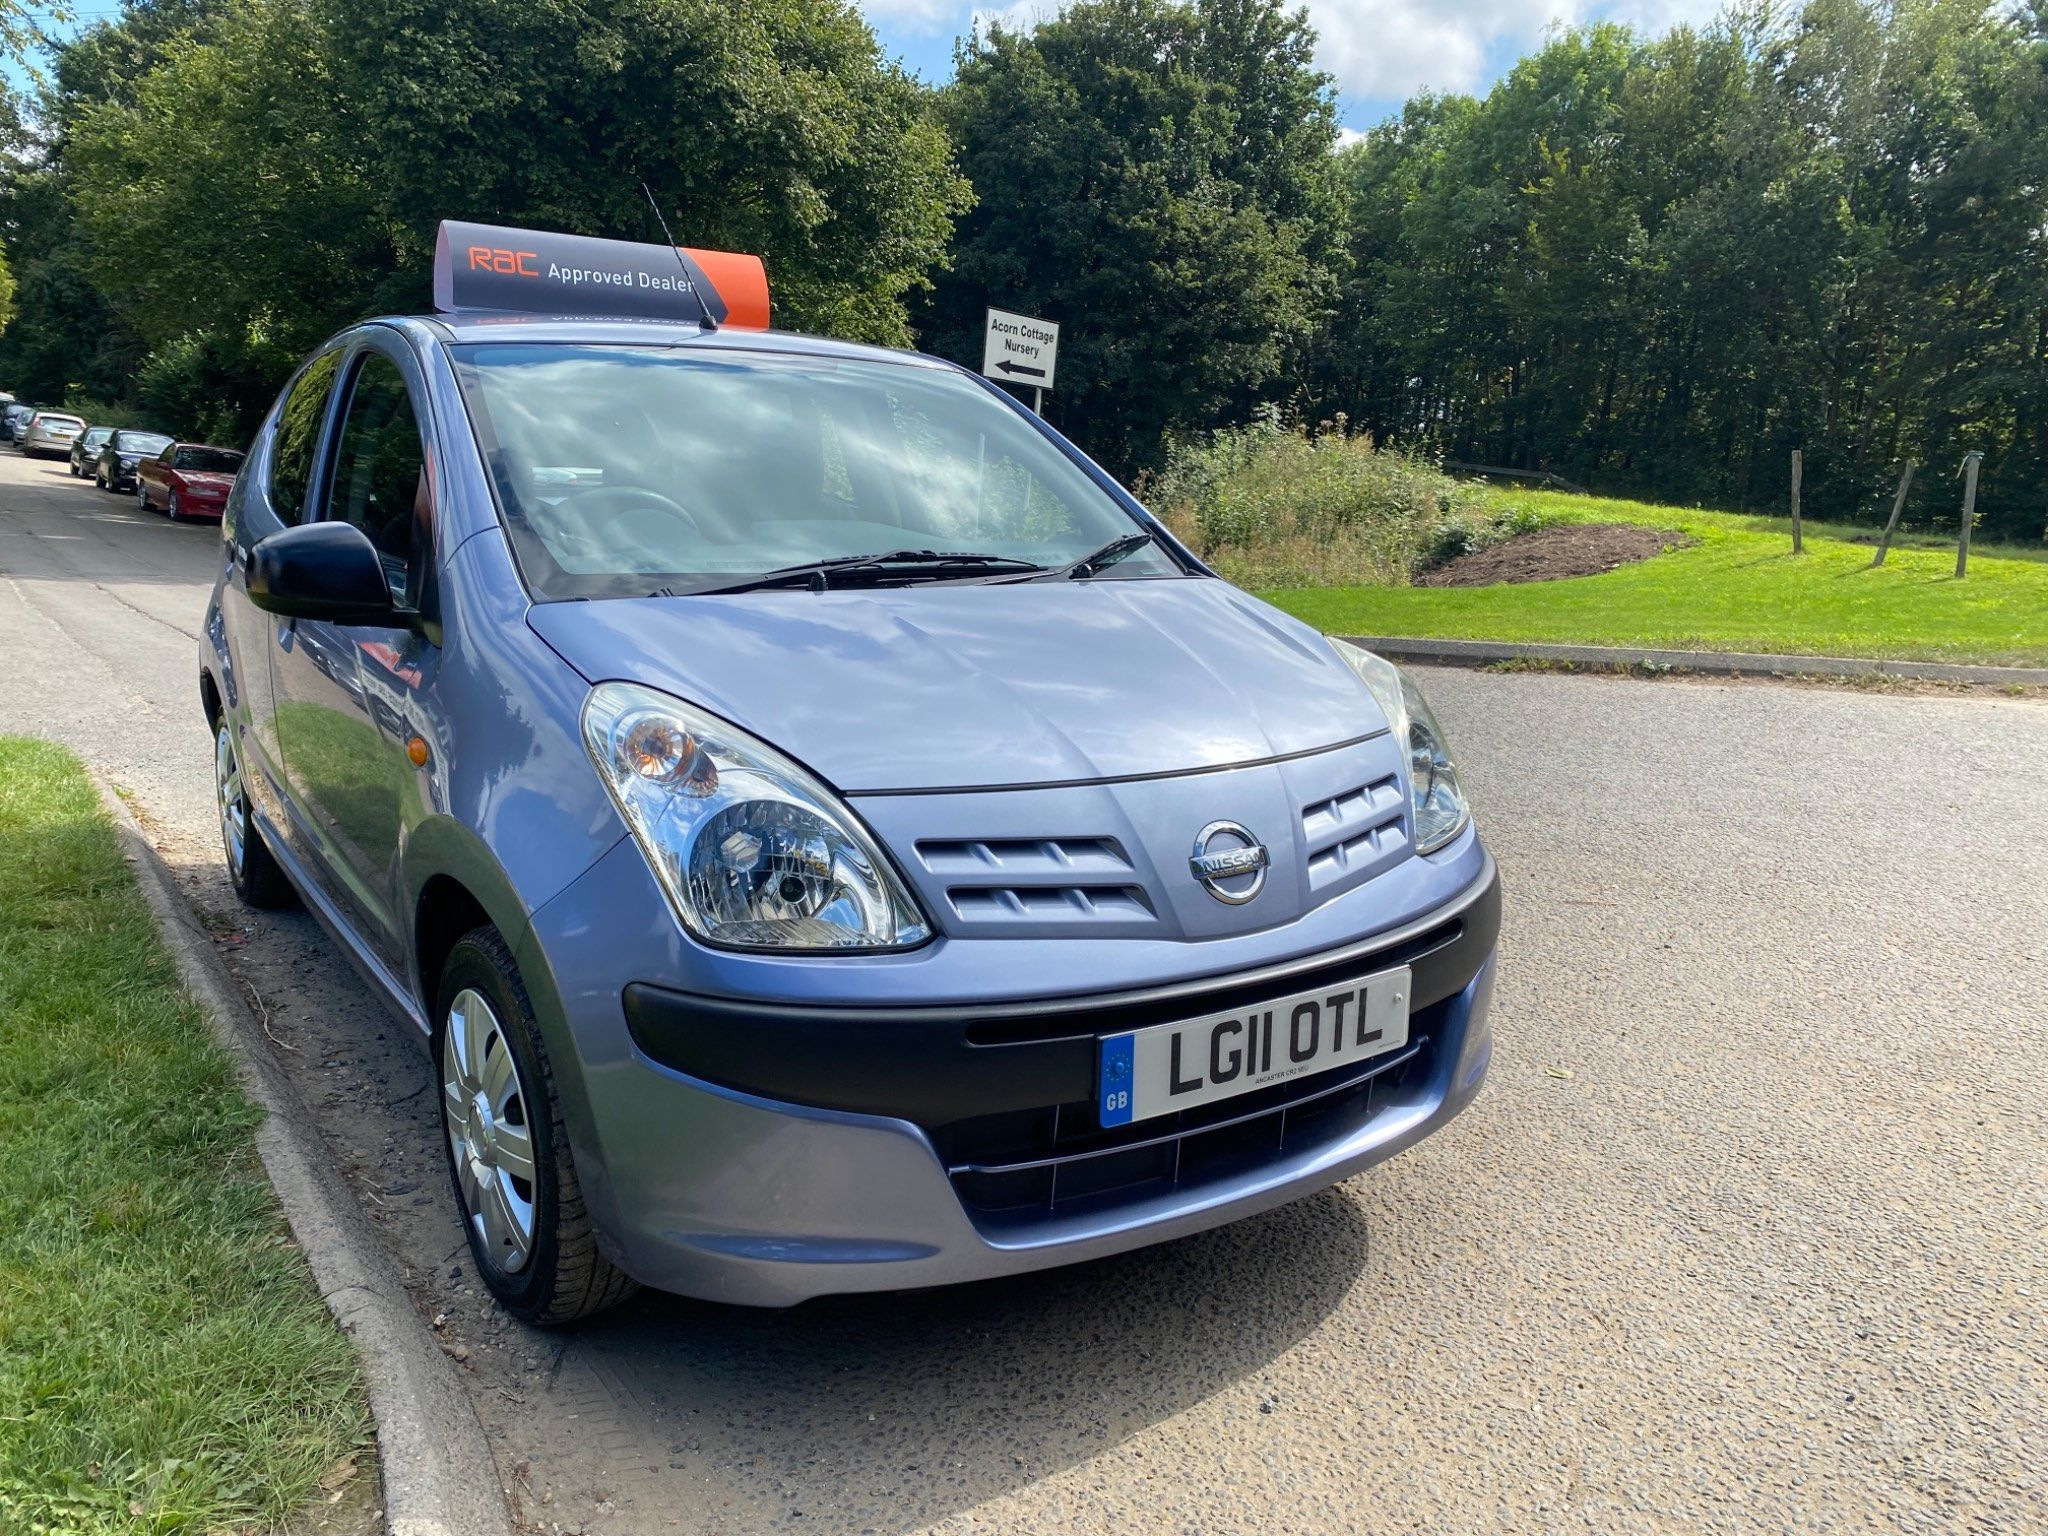 Used Nissan Pixo for sale